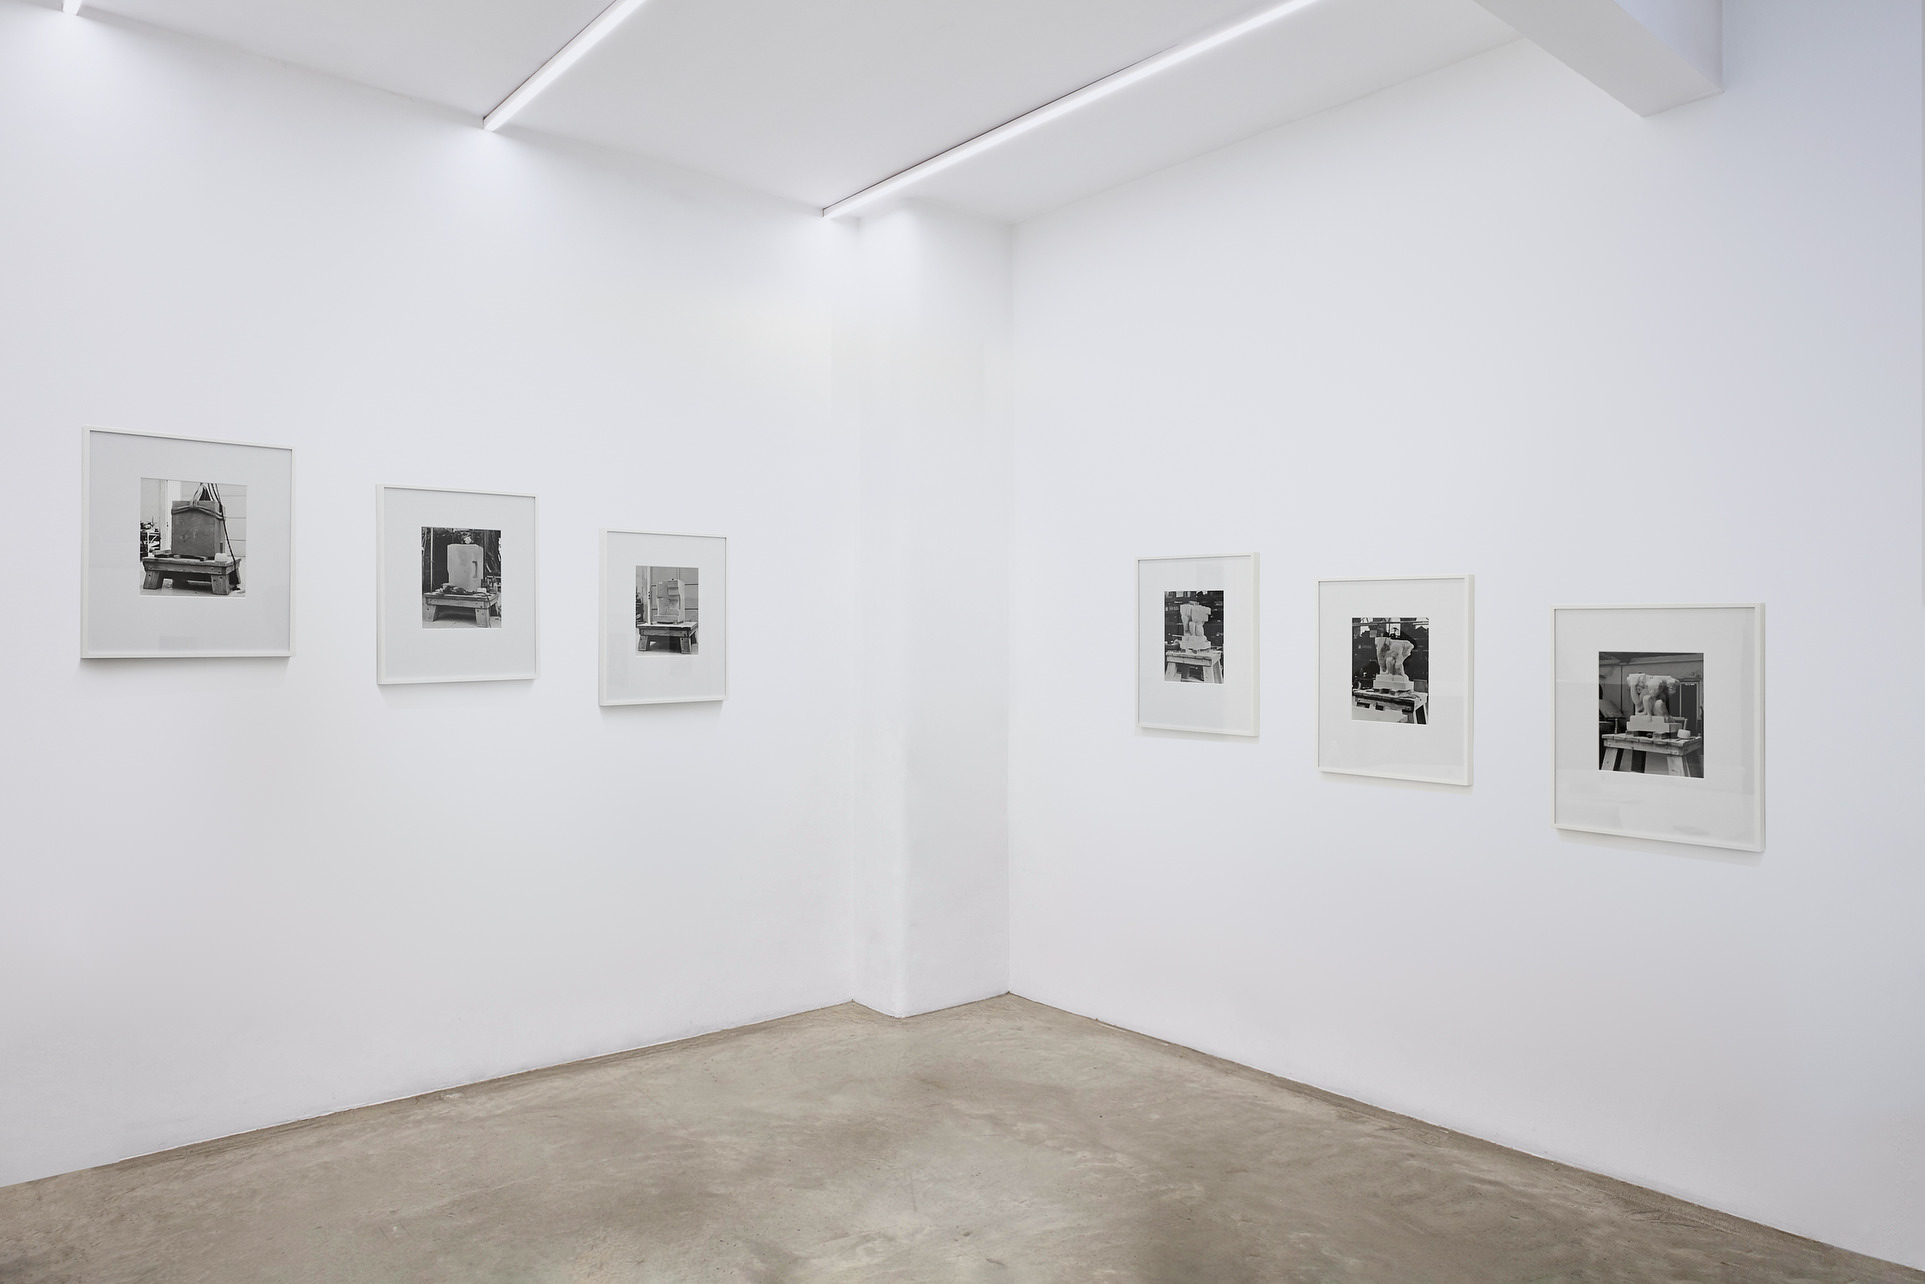 Sean Lynch, The Devil In The Deail, installation view 7